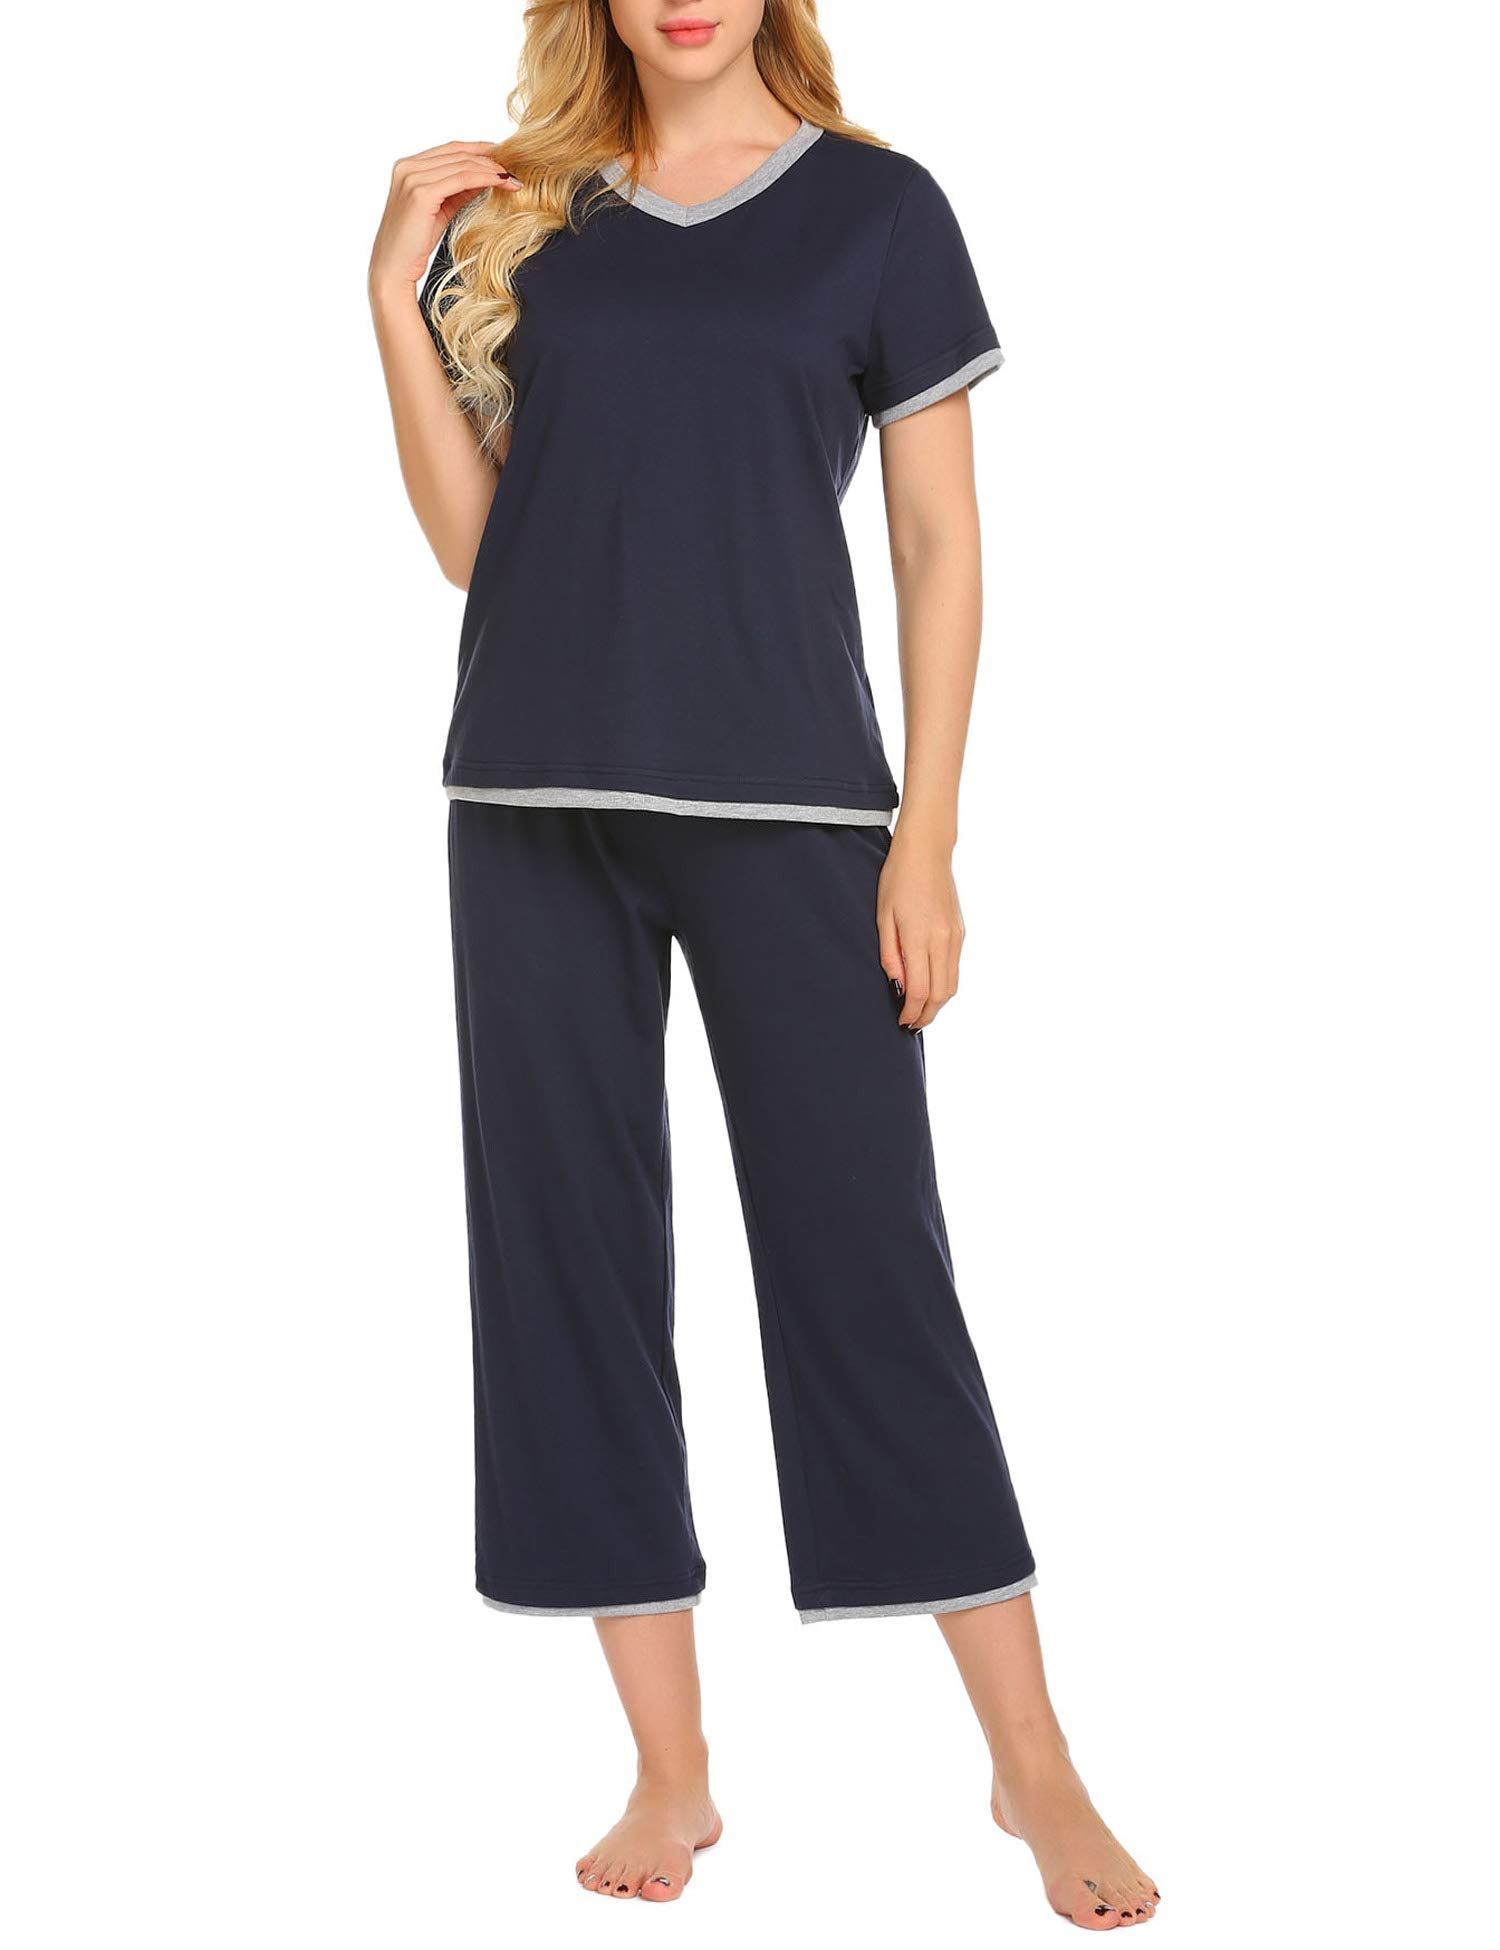 Ekouaer Pajamas Half Sleeve Pajama Set Top with Bottom Pjs V-Neck Sleepwear Soft Loungewear Set S-XXL